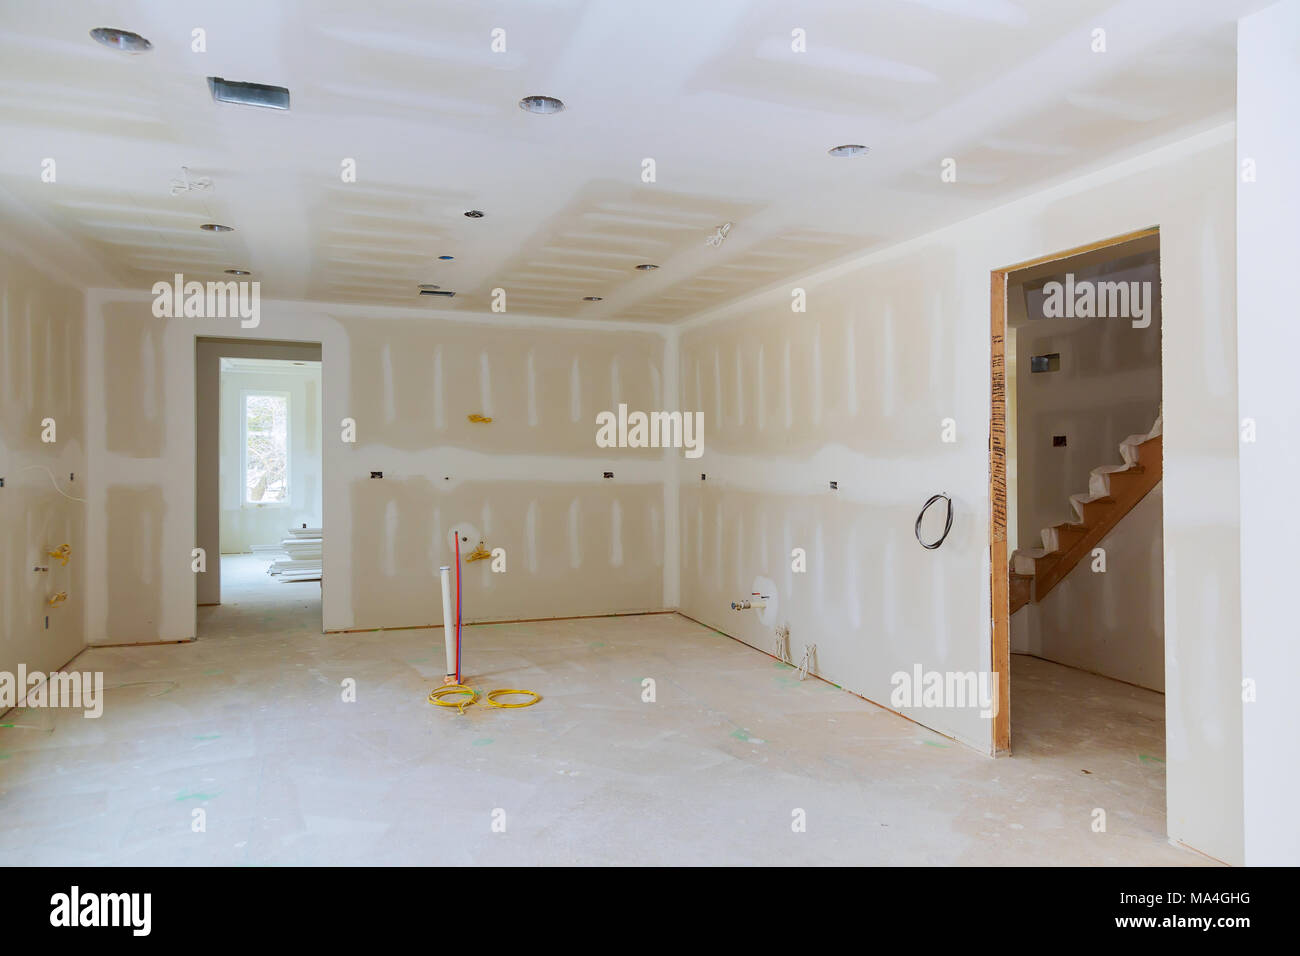 Drywall is hung in kitchen remodeling project Interior of ...